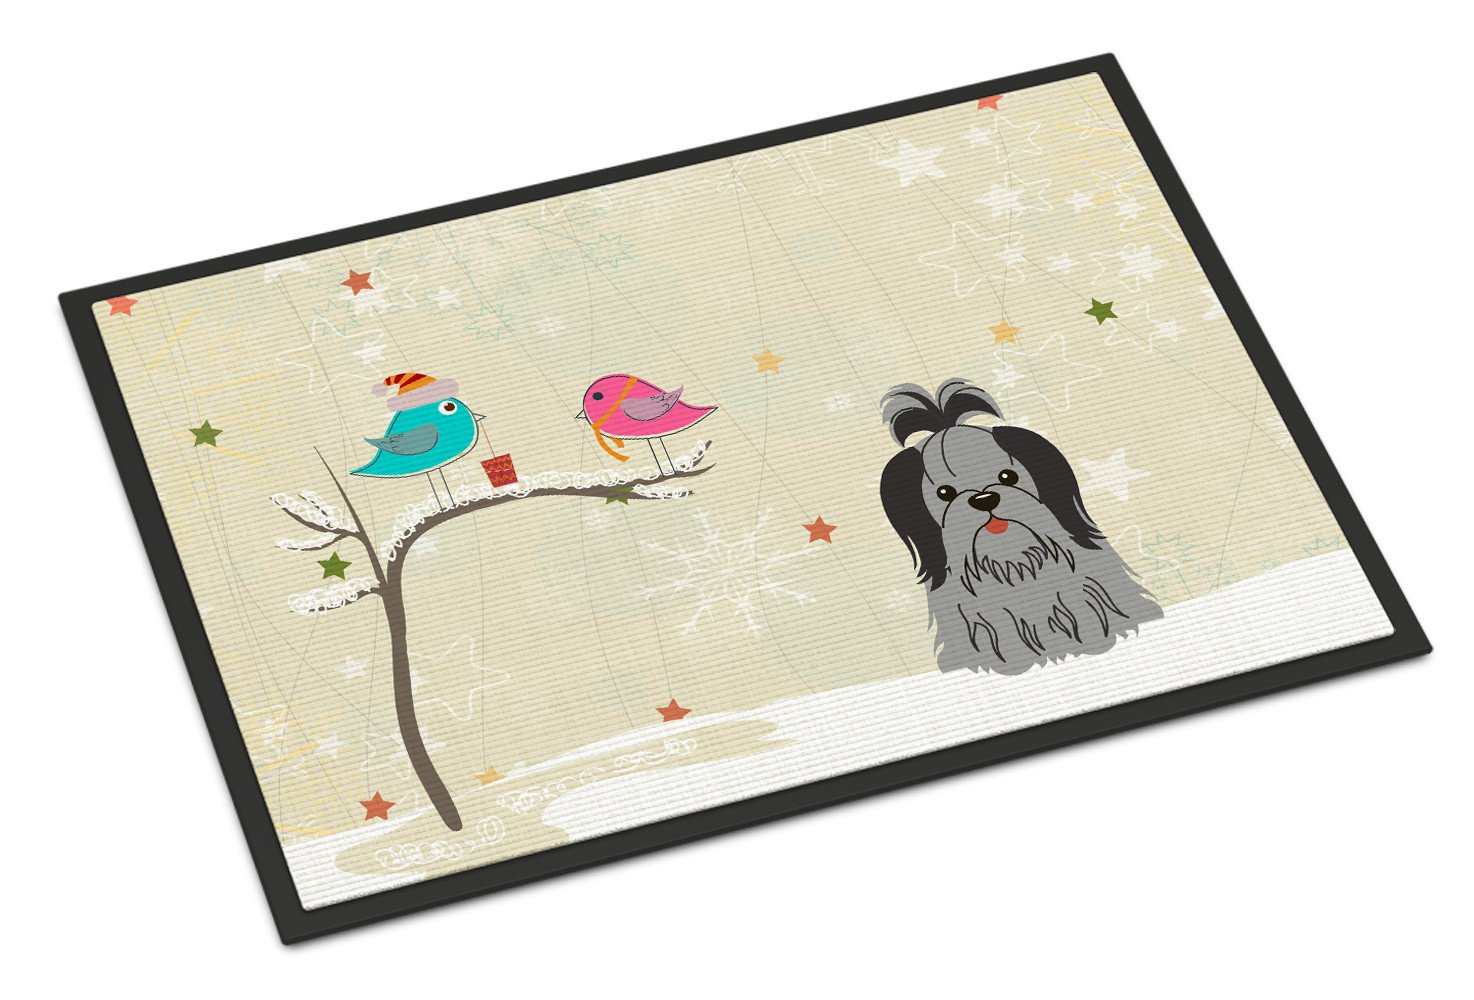 Christmas Presents between Friends Shih Tzu Black Silver Indoor or Outdoor Mat 24x36 BB2561JMAT - the-store.com